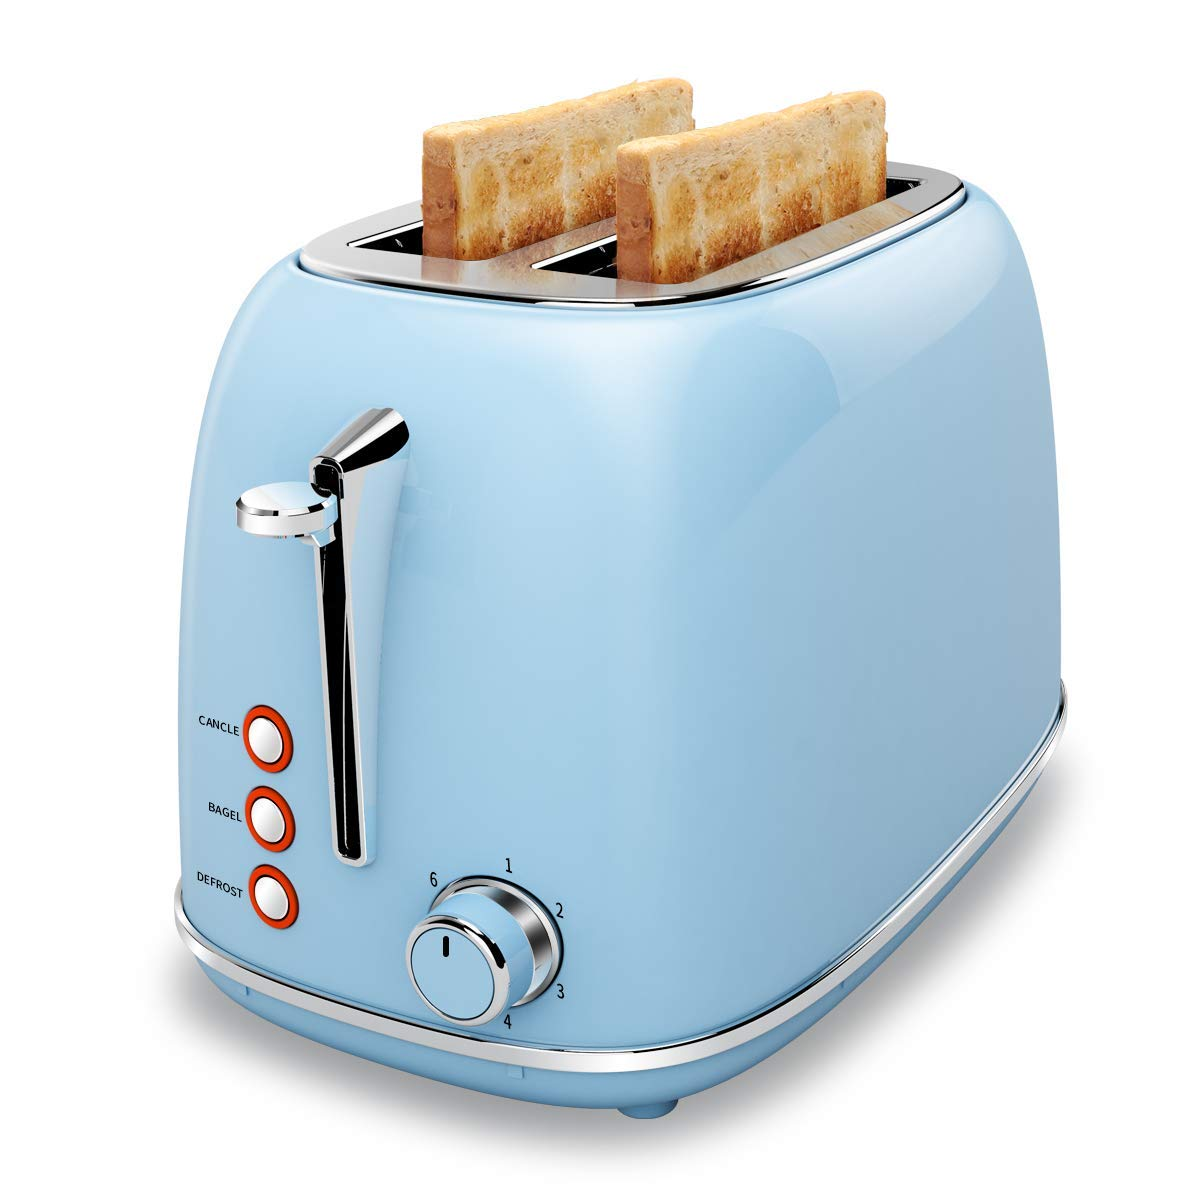 I JUST LOVE THIS TEAL TOASTER FROM KEENSTONE